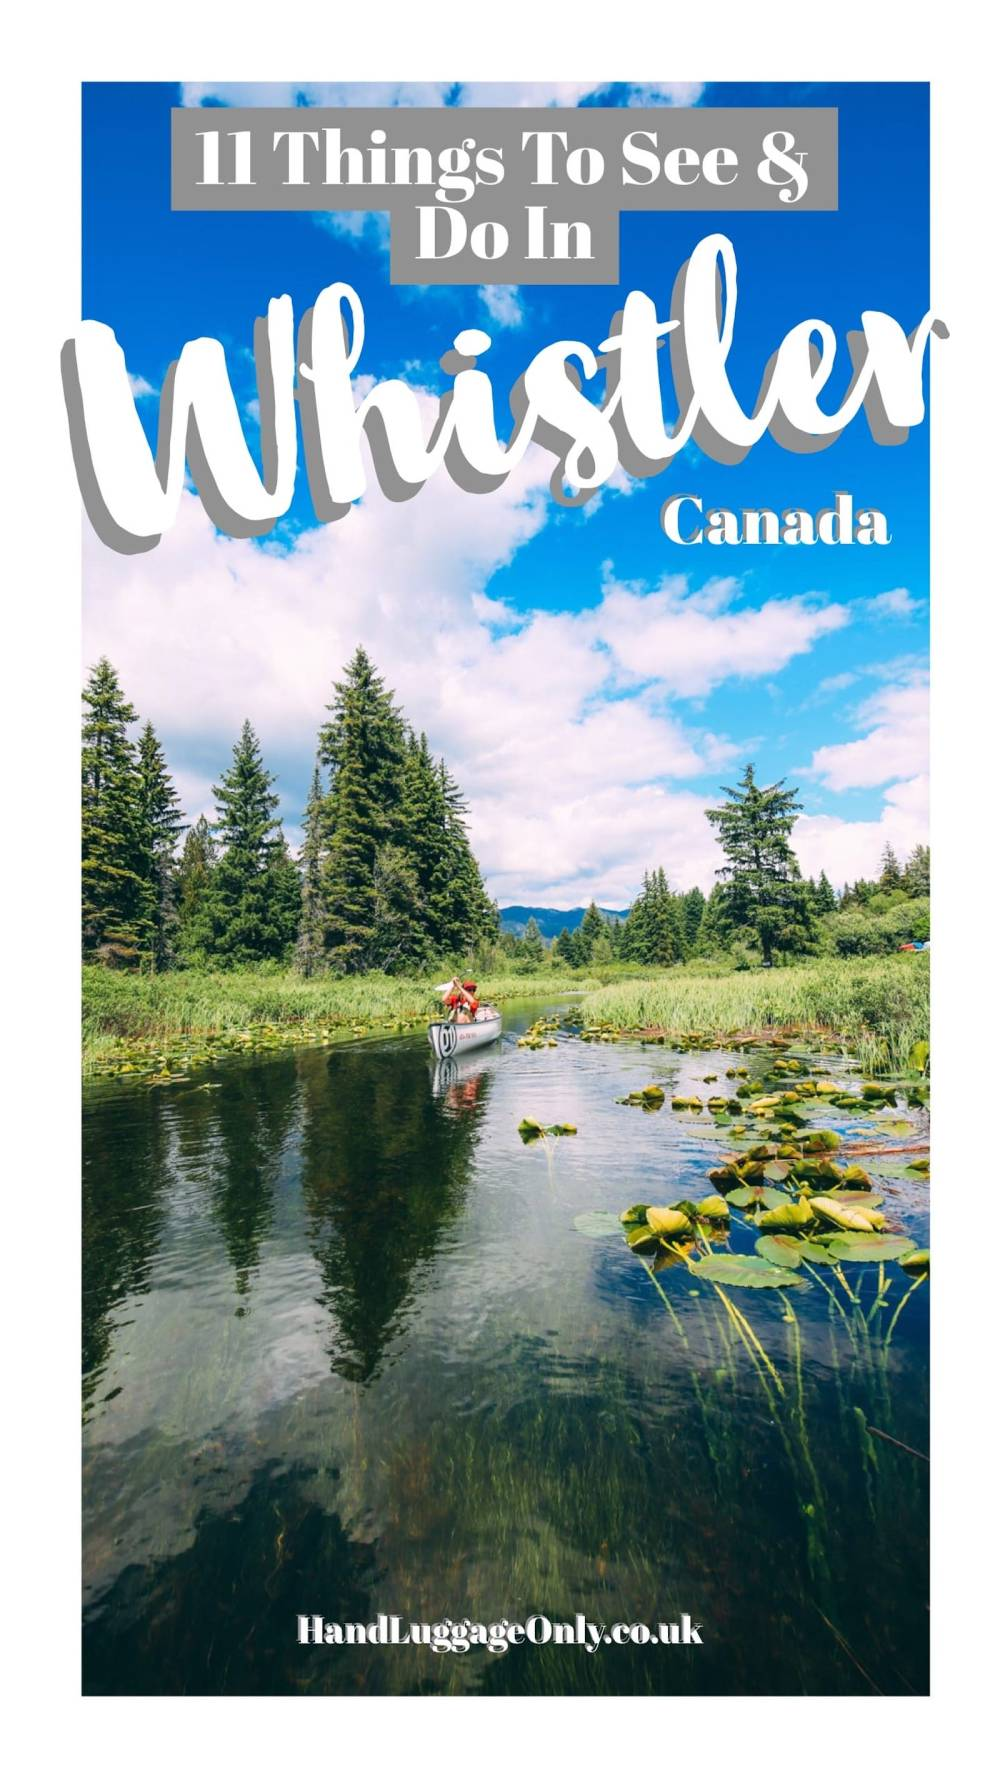 11 Amazing Things To See And Do In Whistler, Canada (1)